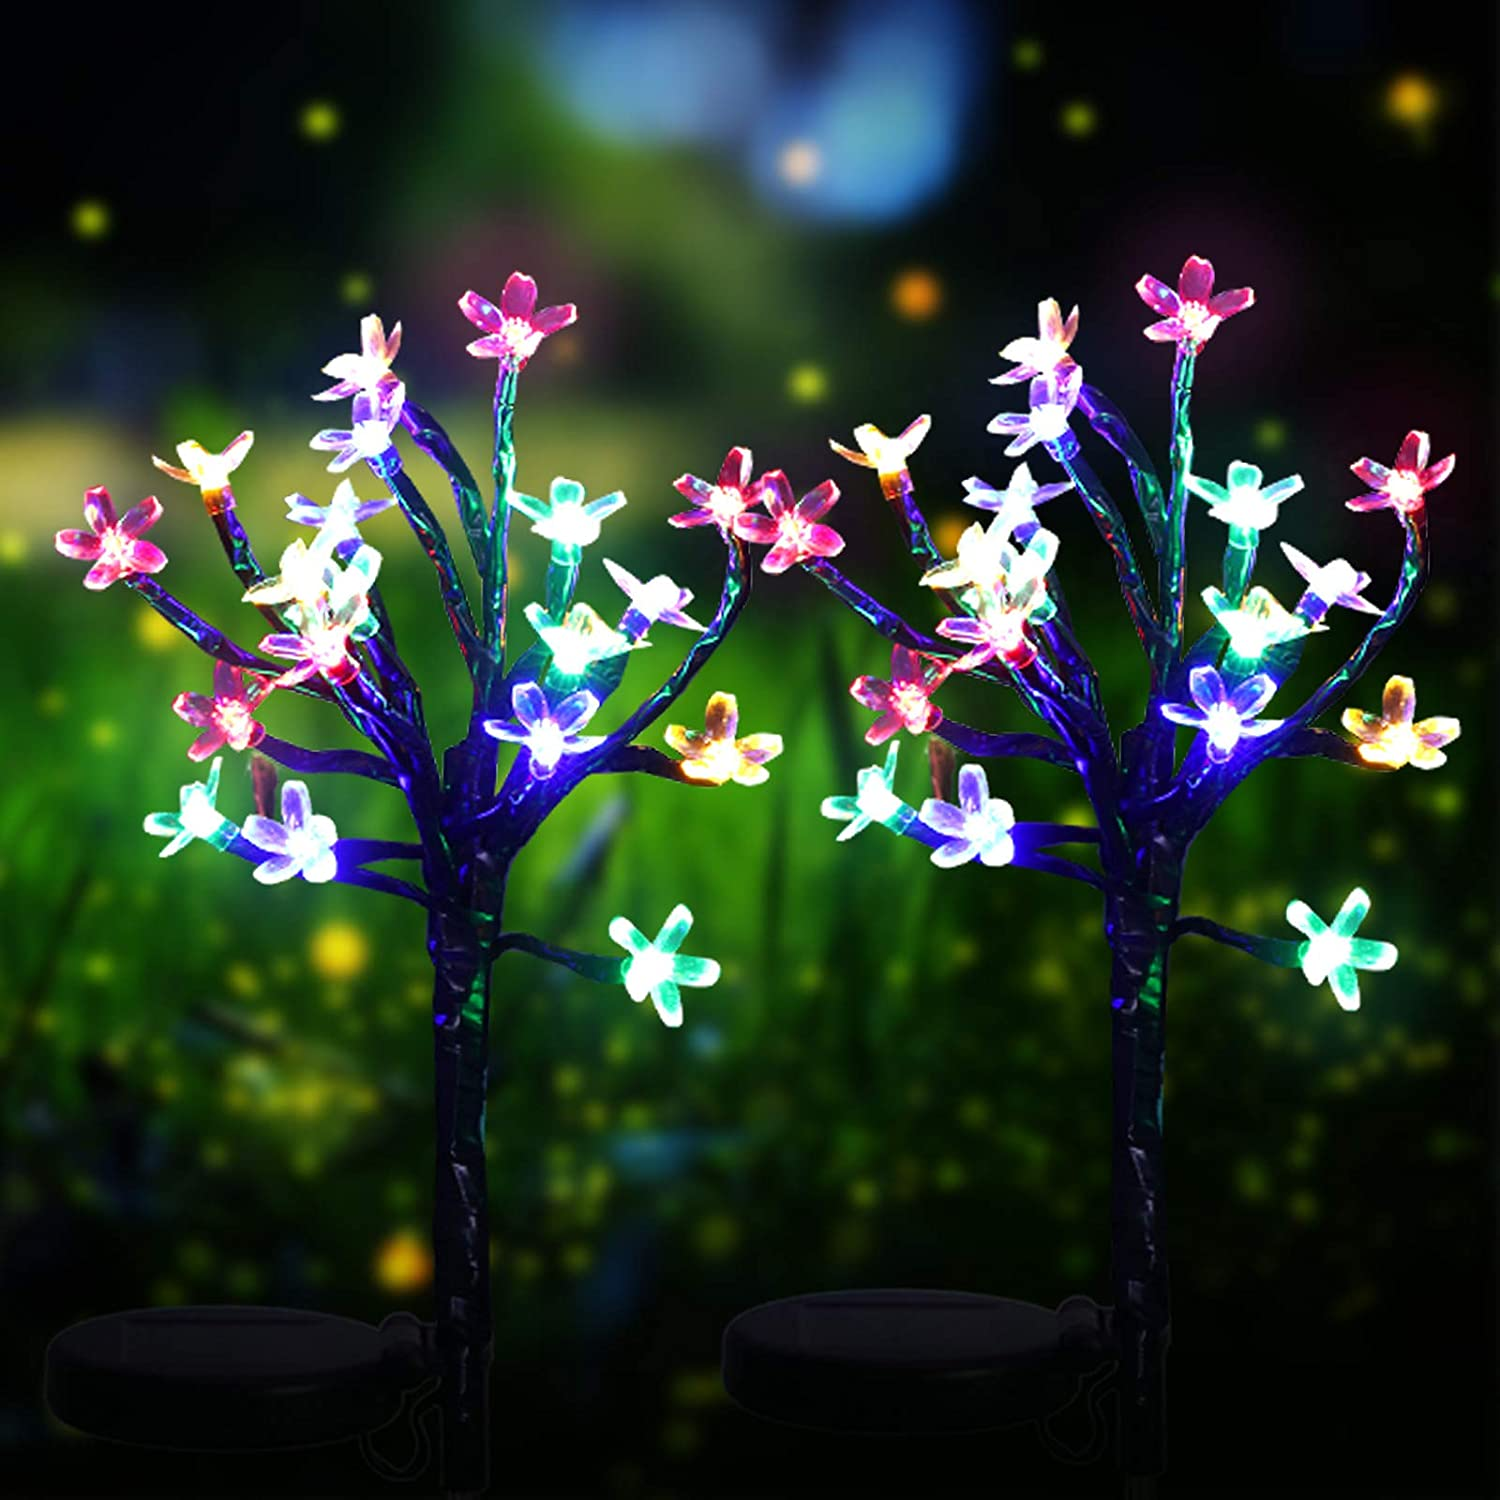 2 Pieces Solar Flower Lights with 20 Multi-Color LED Cherry Flower Fairy Lights Waterproof Solar Powered Blossom Light for Outdoor Garden Yard Patio Lawn Pathway Landscape Decoration